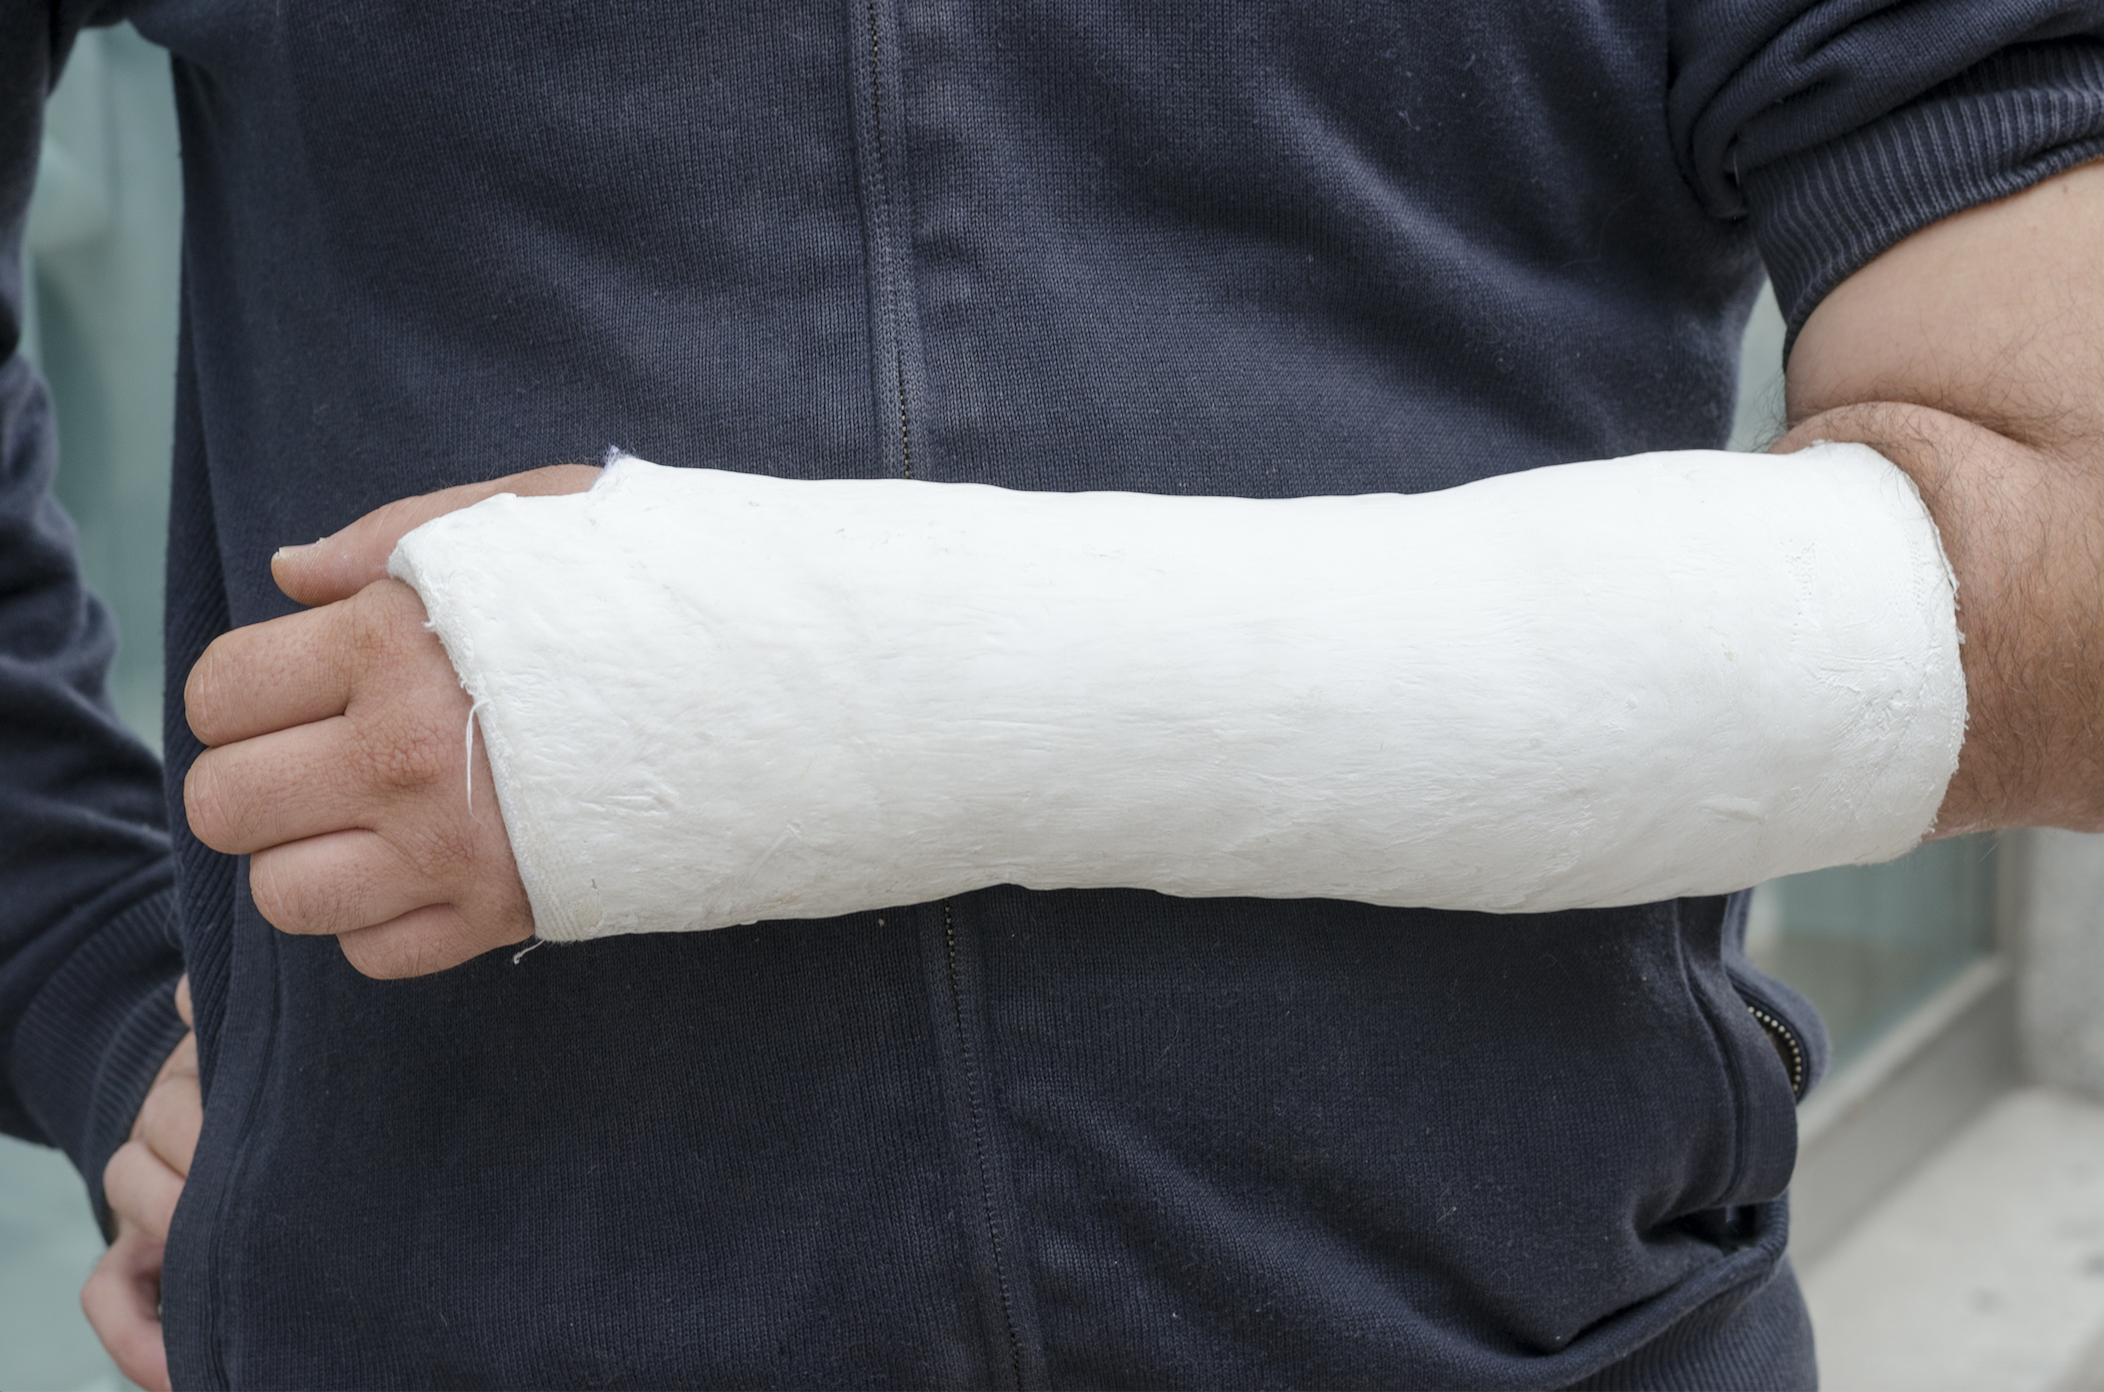 man with an injury in a cast after an accident